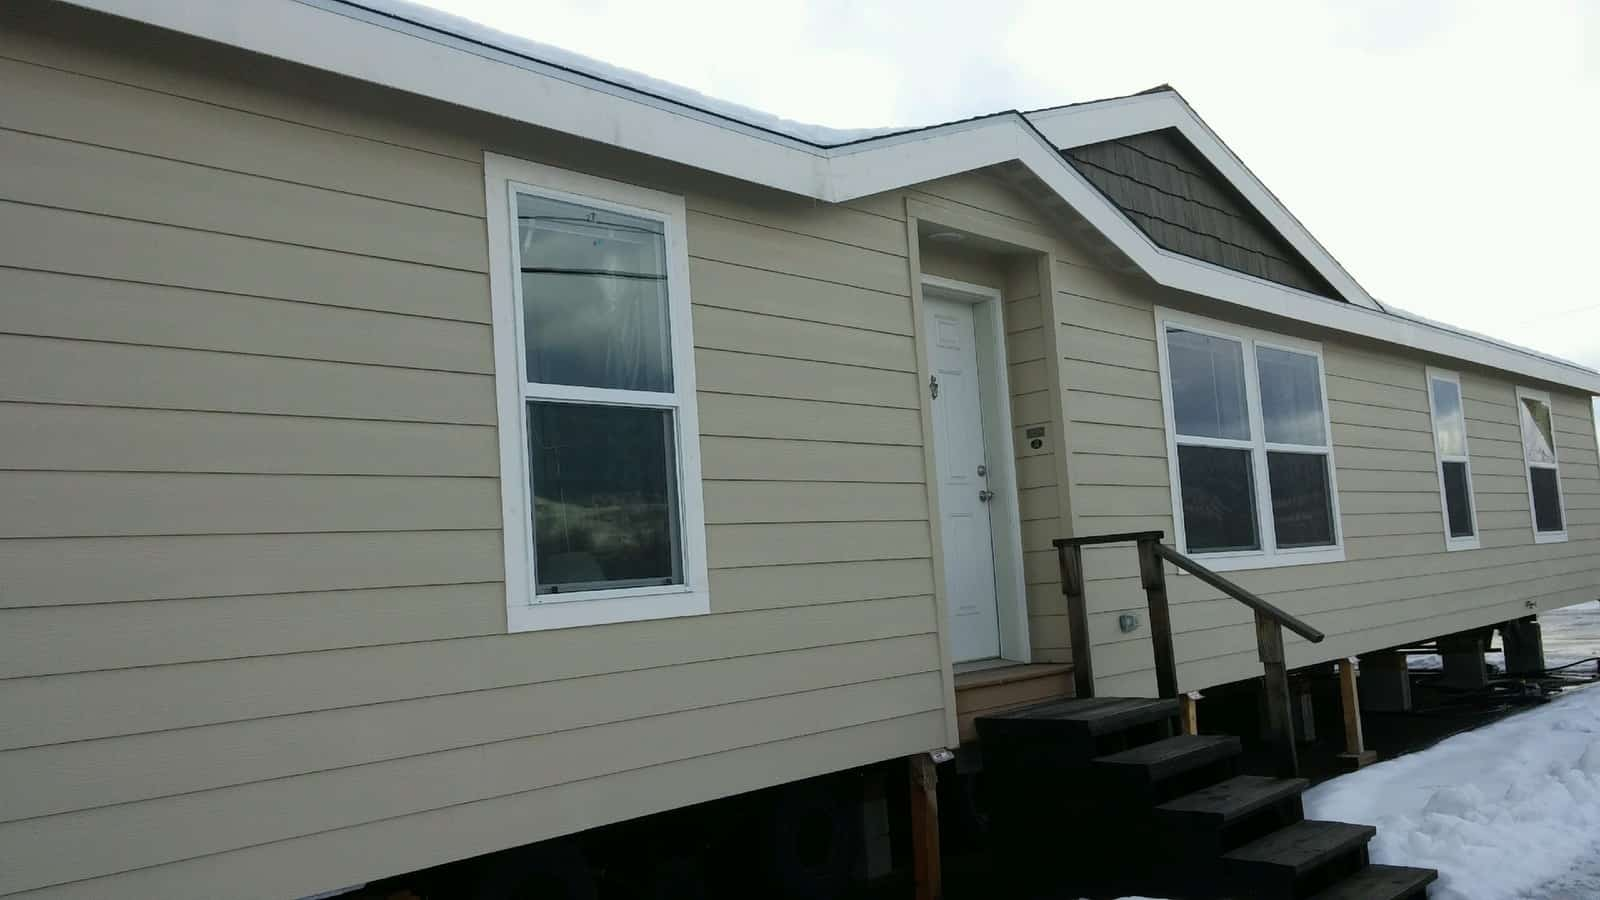 NEW /w DEN OR 4TH BEDROOM Marlette MUST SEE Glacier Peak 9597-S 1914 Sq.Ft. - Rangitsch Manufactured Home Center